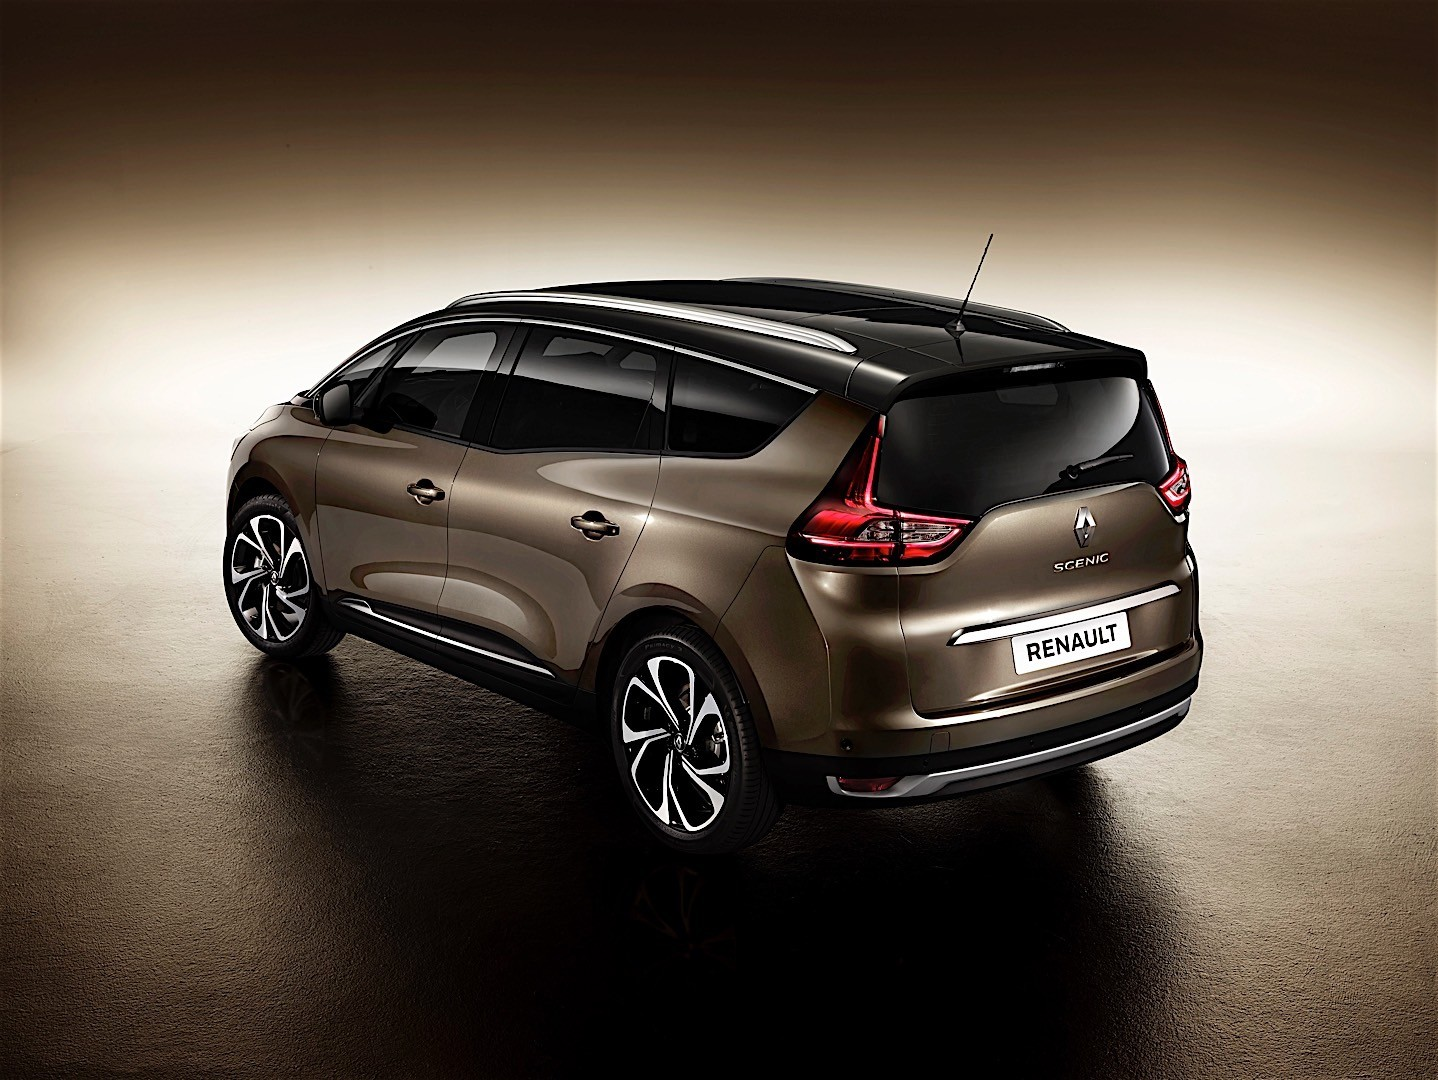 renault grand scenic specs photos 2016 2017 2018 autoevolution. Black Bedroom Furniture Sets. Home Design Ideas